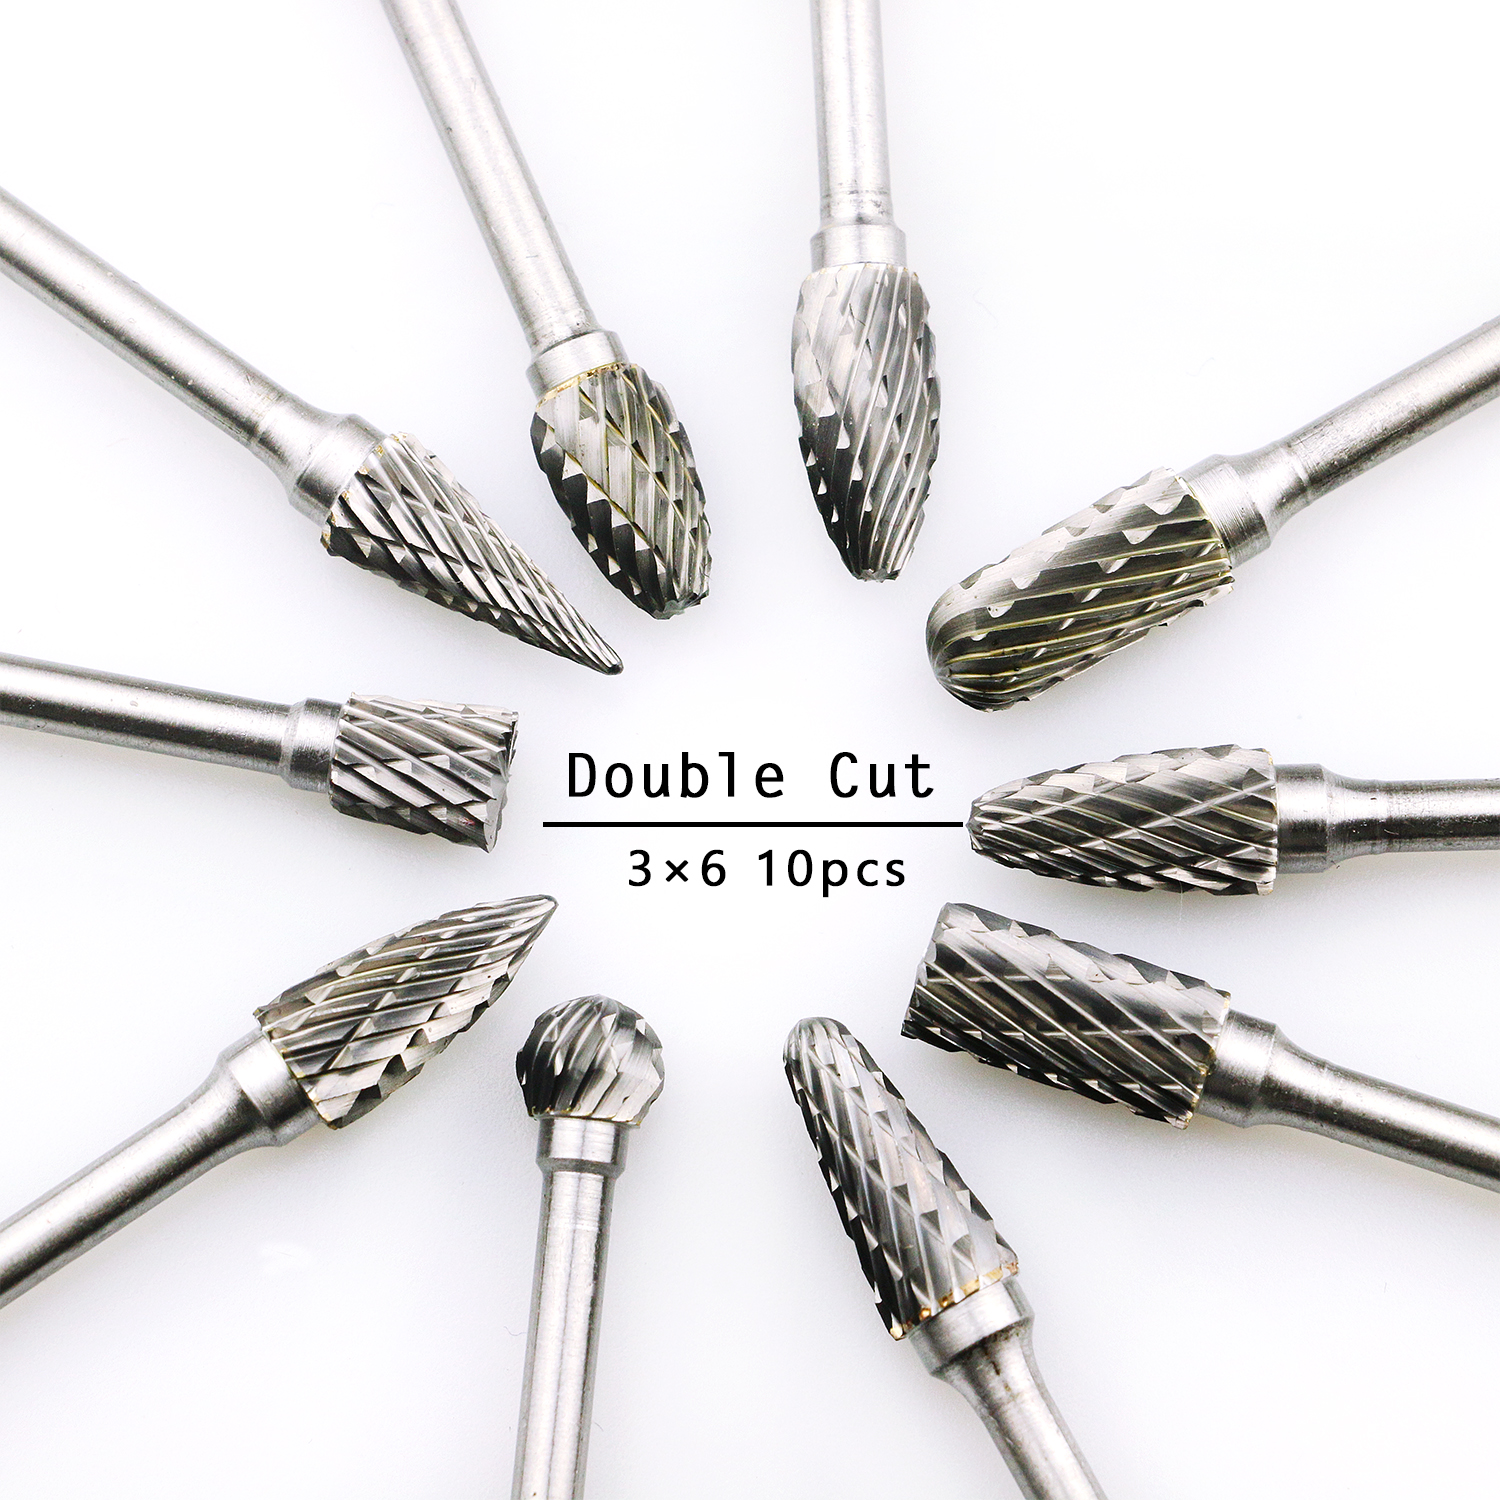 10pcs Double Cut Tungsten Carbide Rotary Burr Set Metal Carving Drilling Polishing Bits With 3mm Shank For Die Grinder